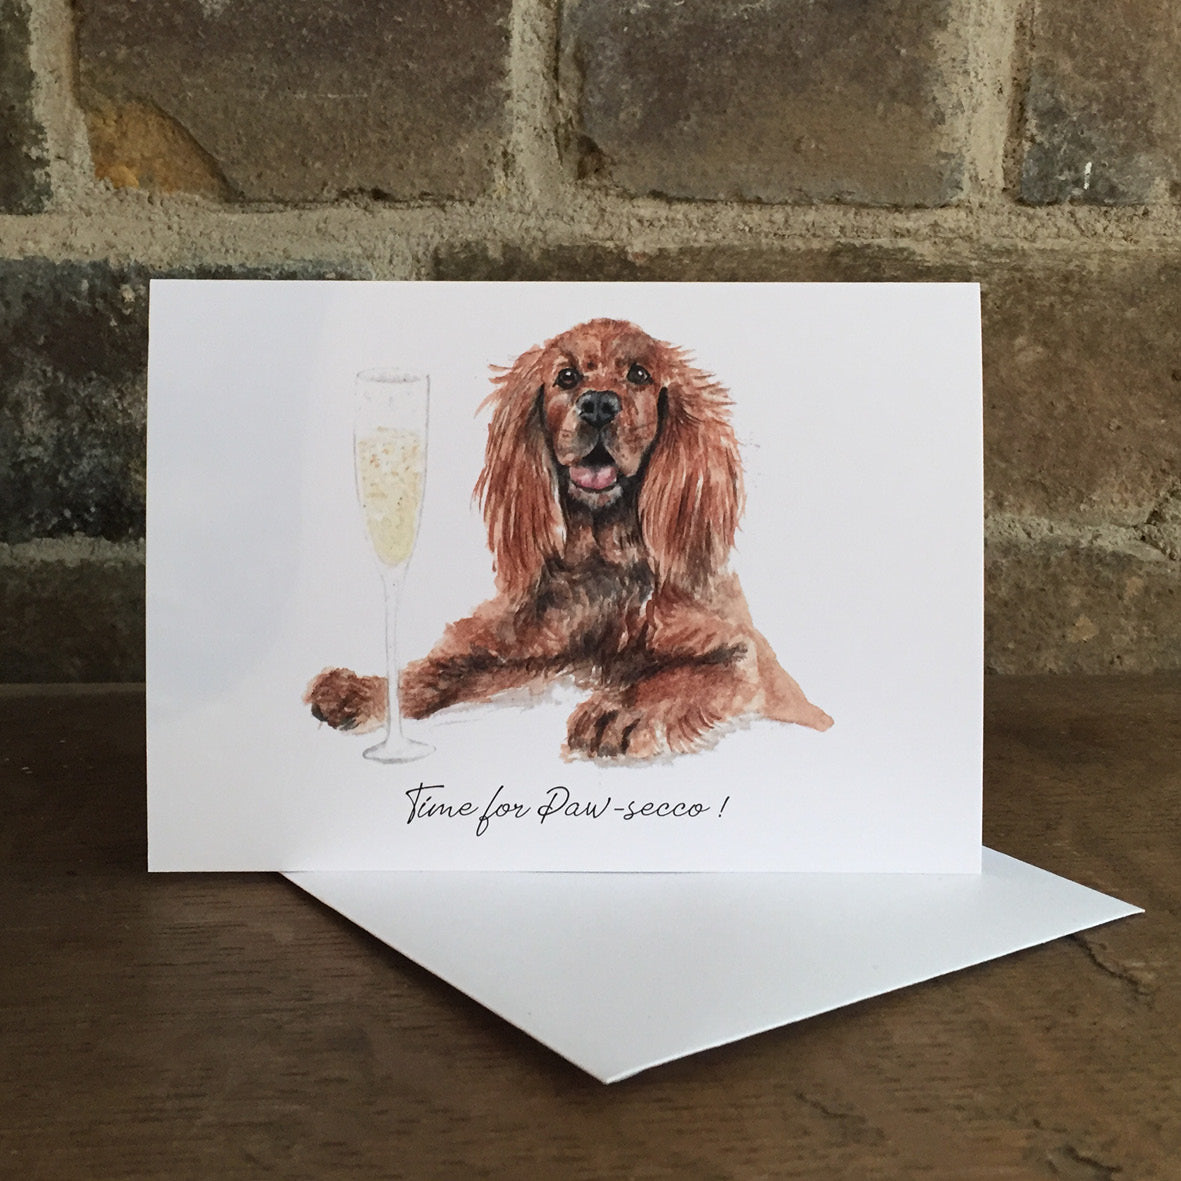 Time for Paw-secco Greeting Card - Celebration card